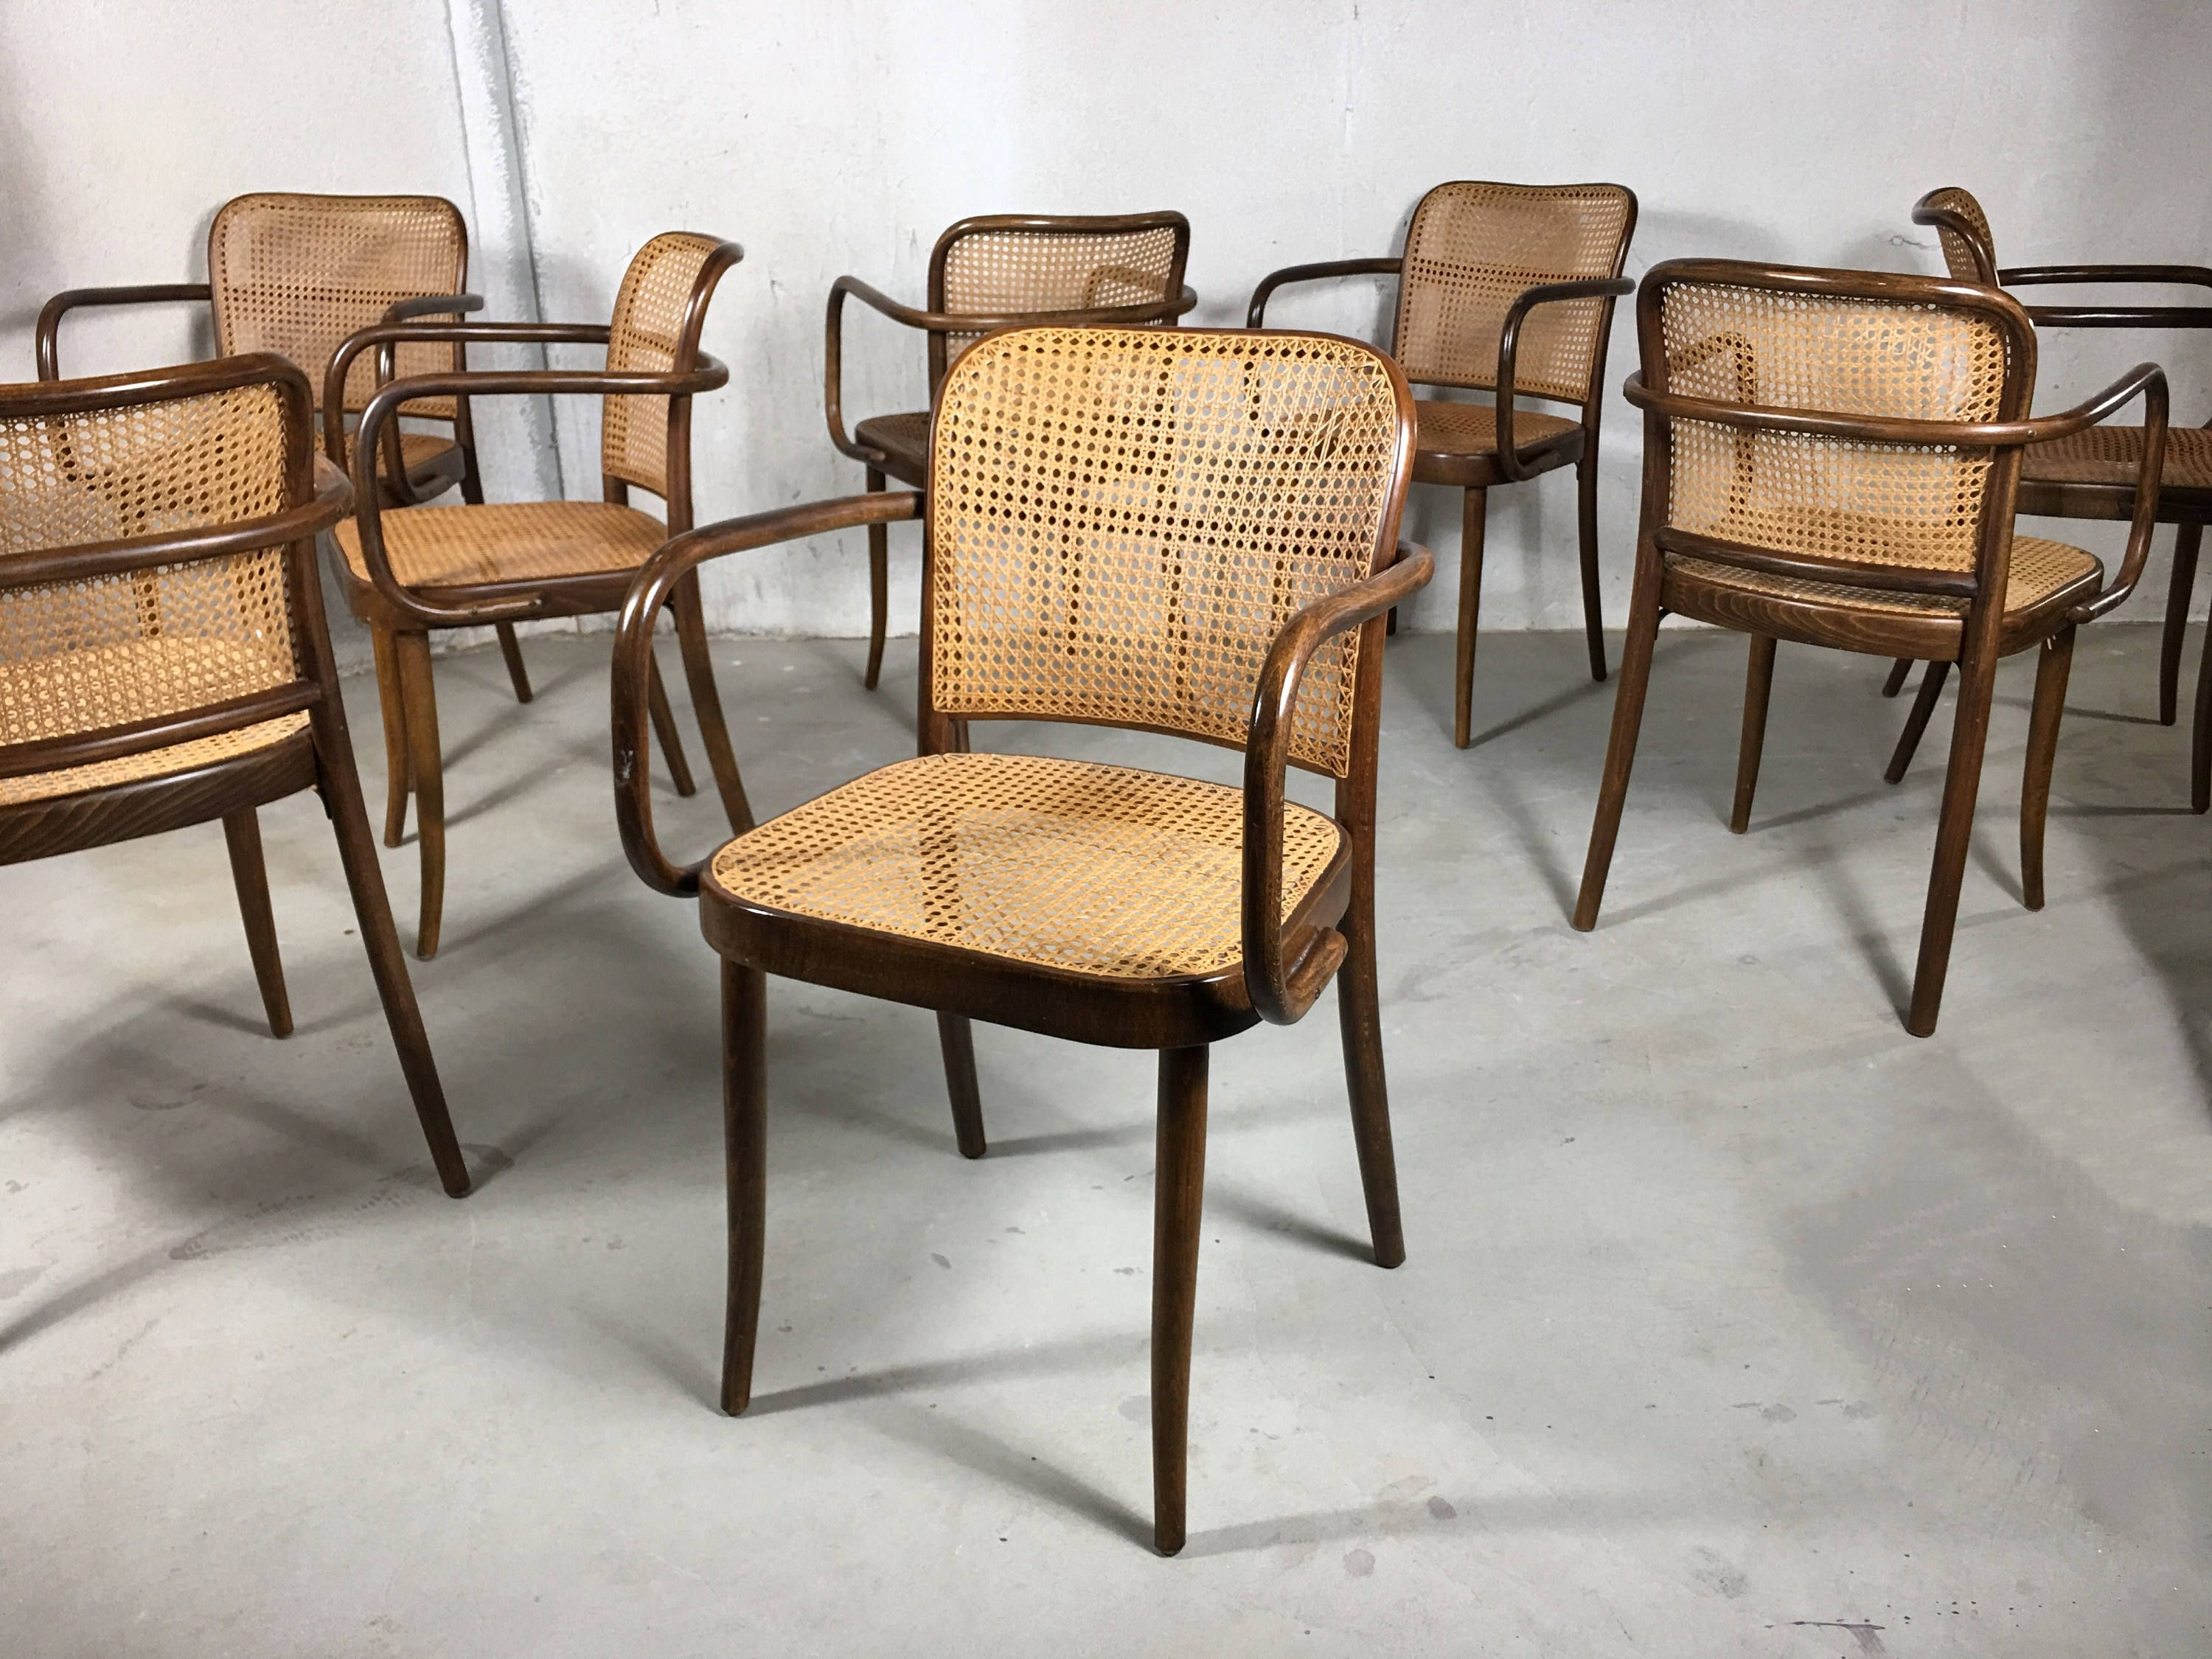 S/8 Josef Frank Modern Dining Chairs, Dining Room Chairs, Cane Bistro Chairs